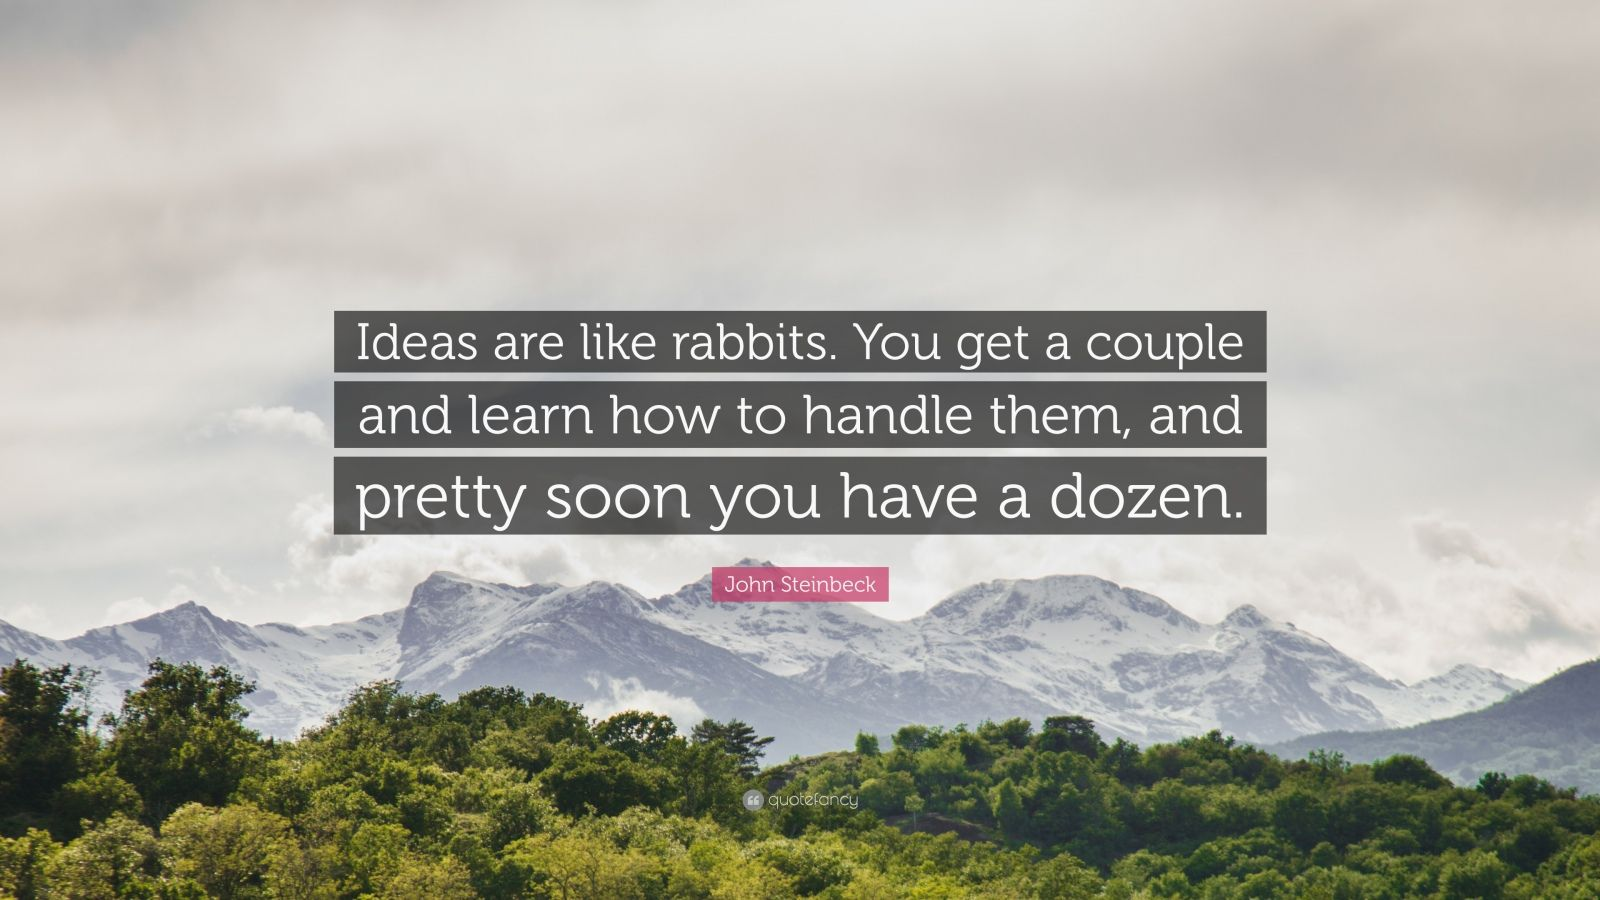 """John Steinbeck Quote: """"Ideas are like rabbits. You get a couple and learn how to handle them, and pretty soon you have a dozen."""""""